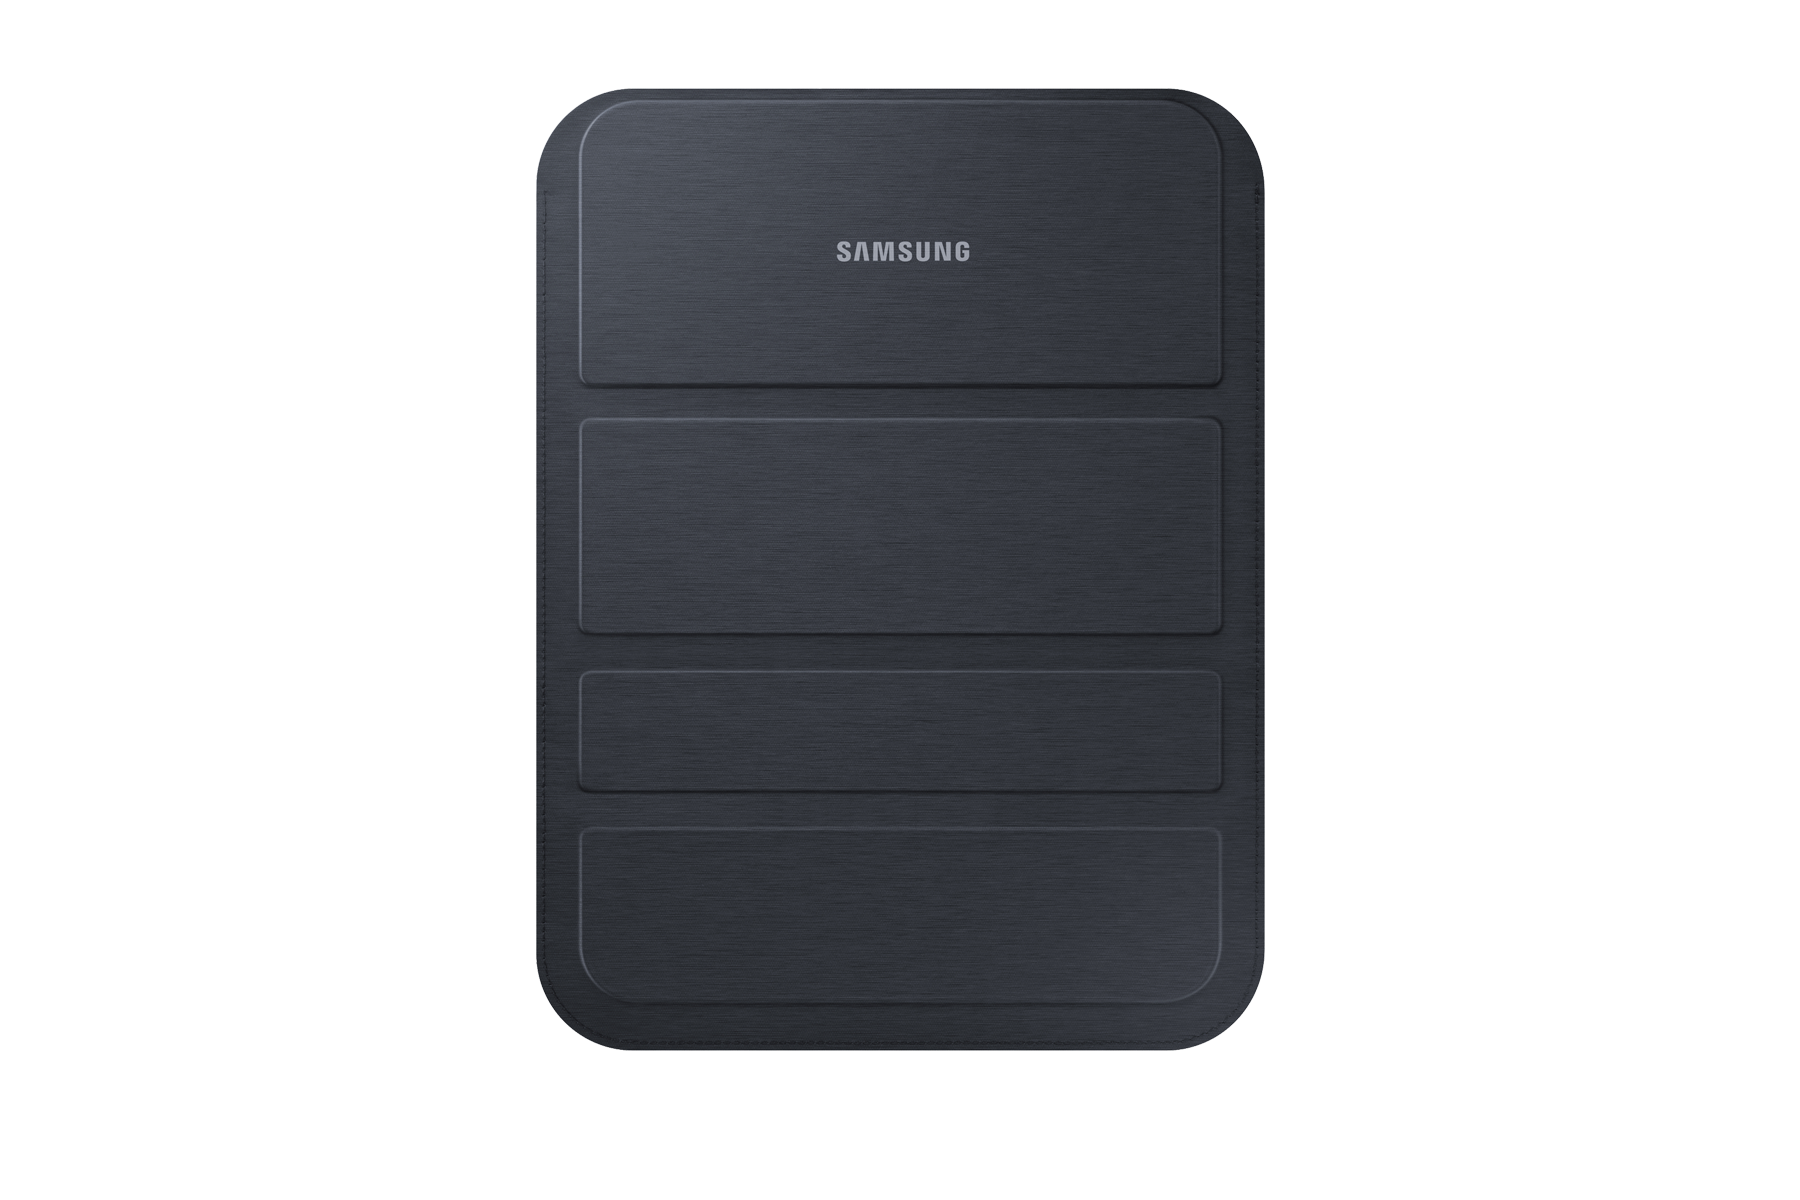 samsung galaxy note 10.1 sm p600 user manual